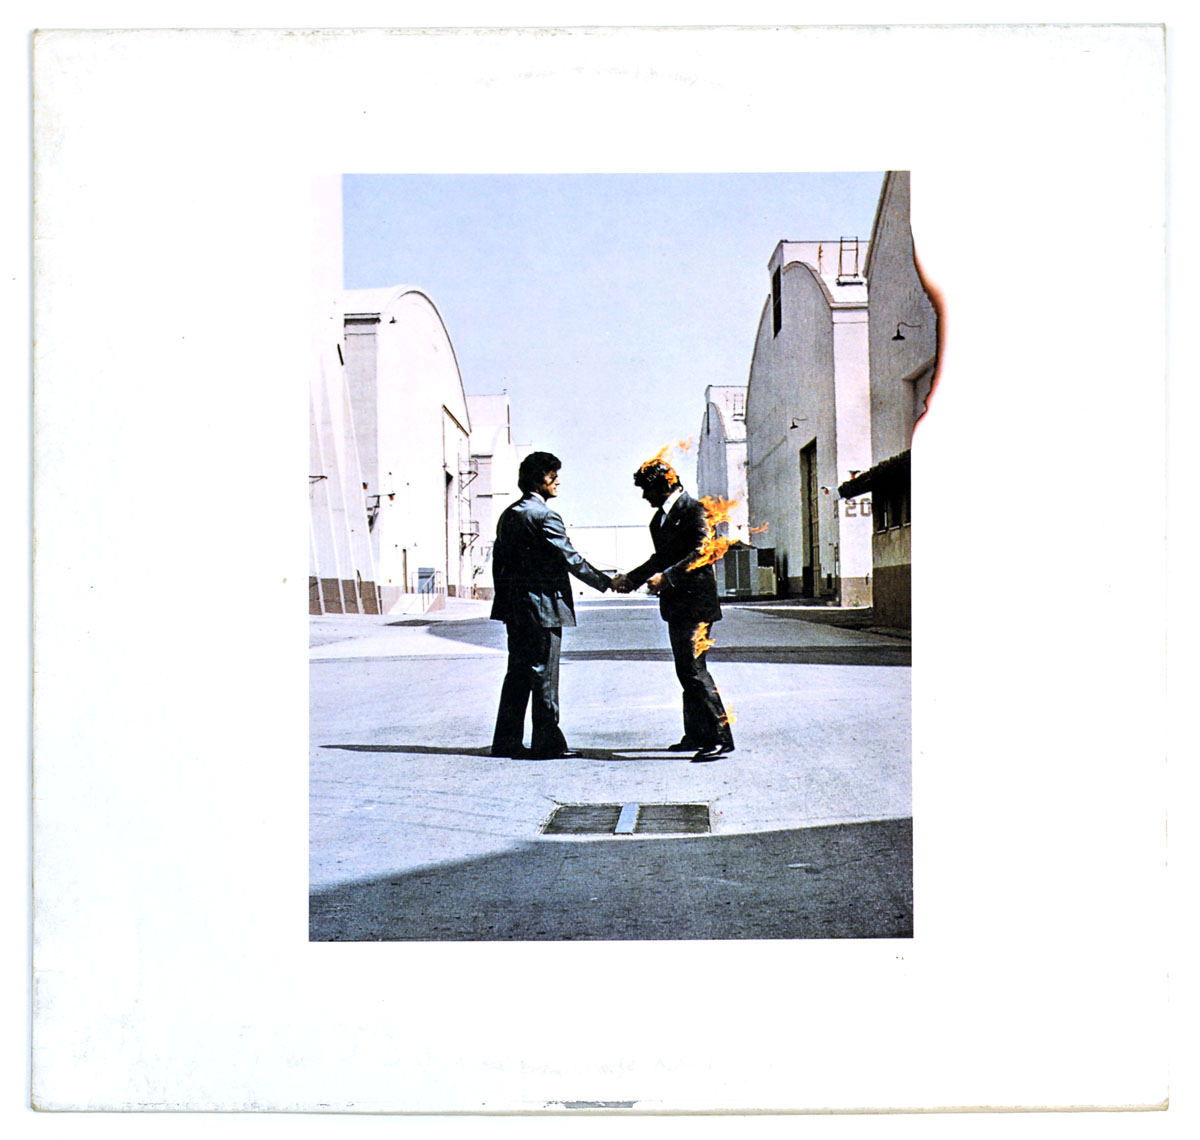 "PINK FLOYD - Wish You Were Here (Germany) 12"" Vinyl LP Album front cover https://vinyl-records.nl"